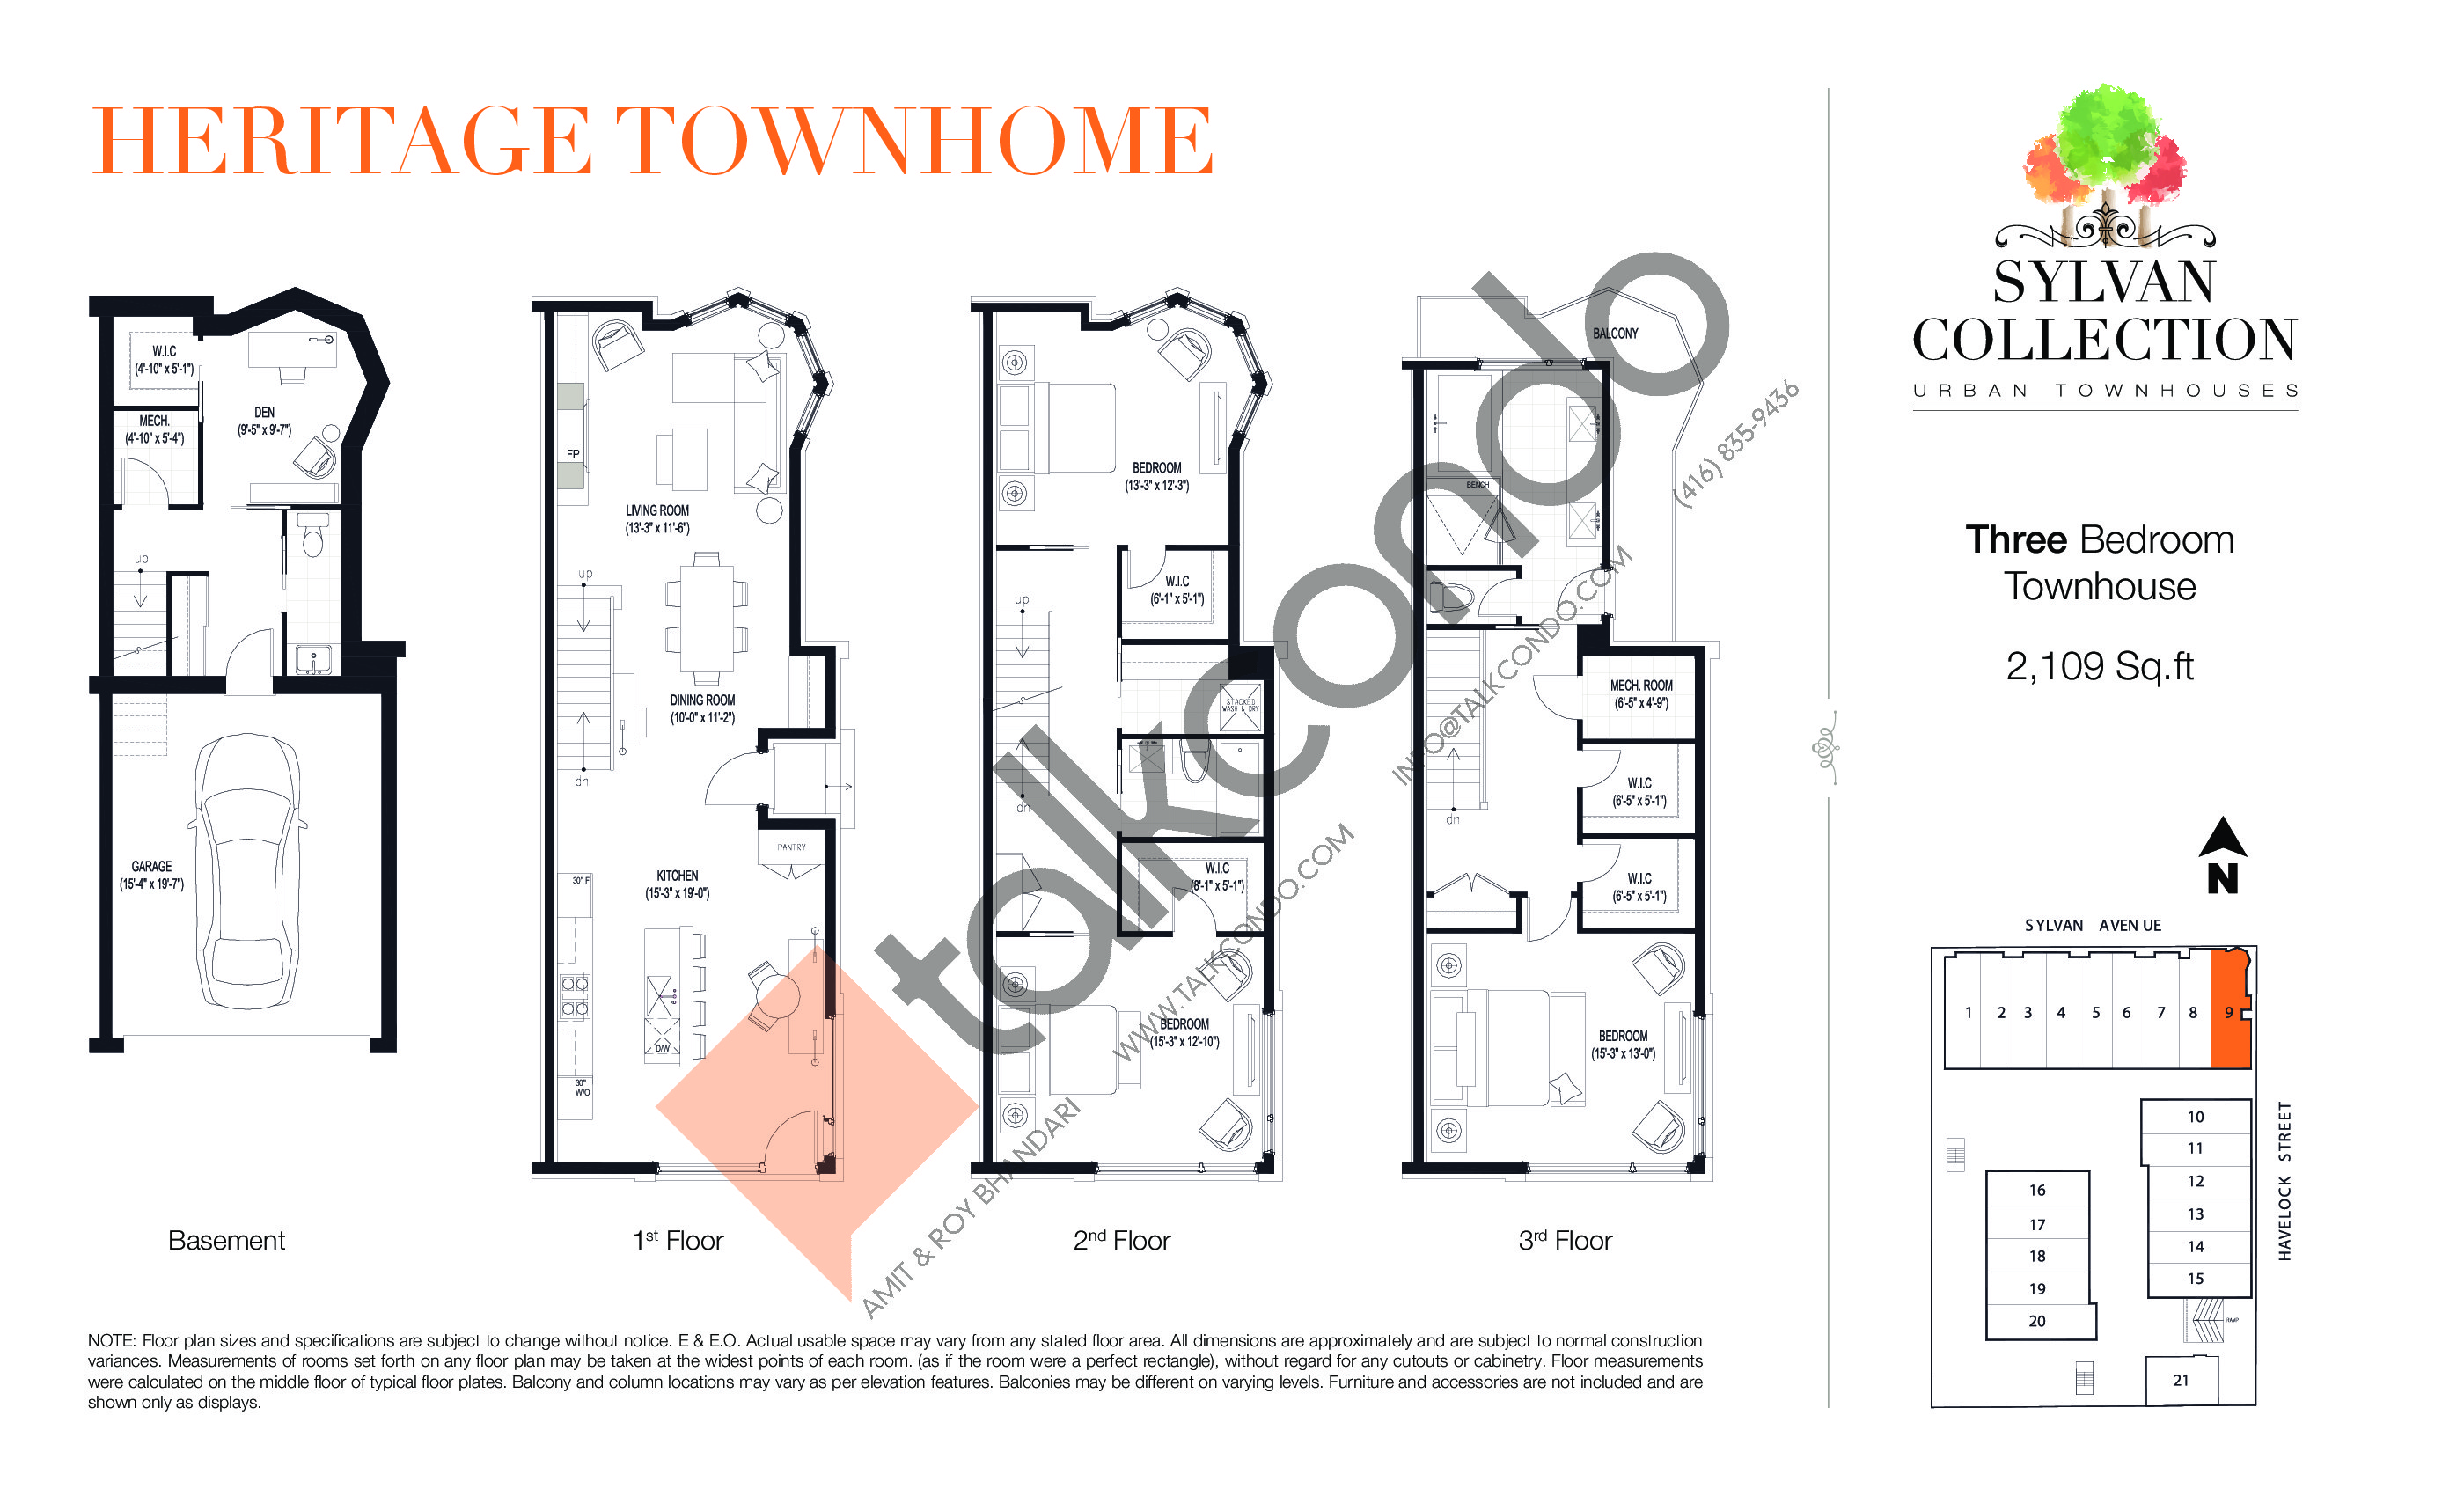 Urban Townhouse Floor Plans: Sylvan Collection Urban Townhouses